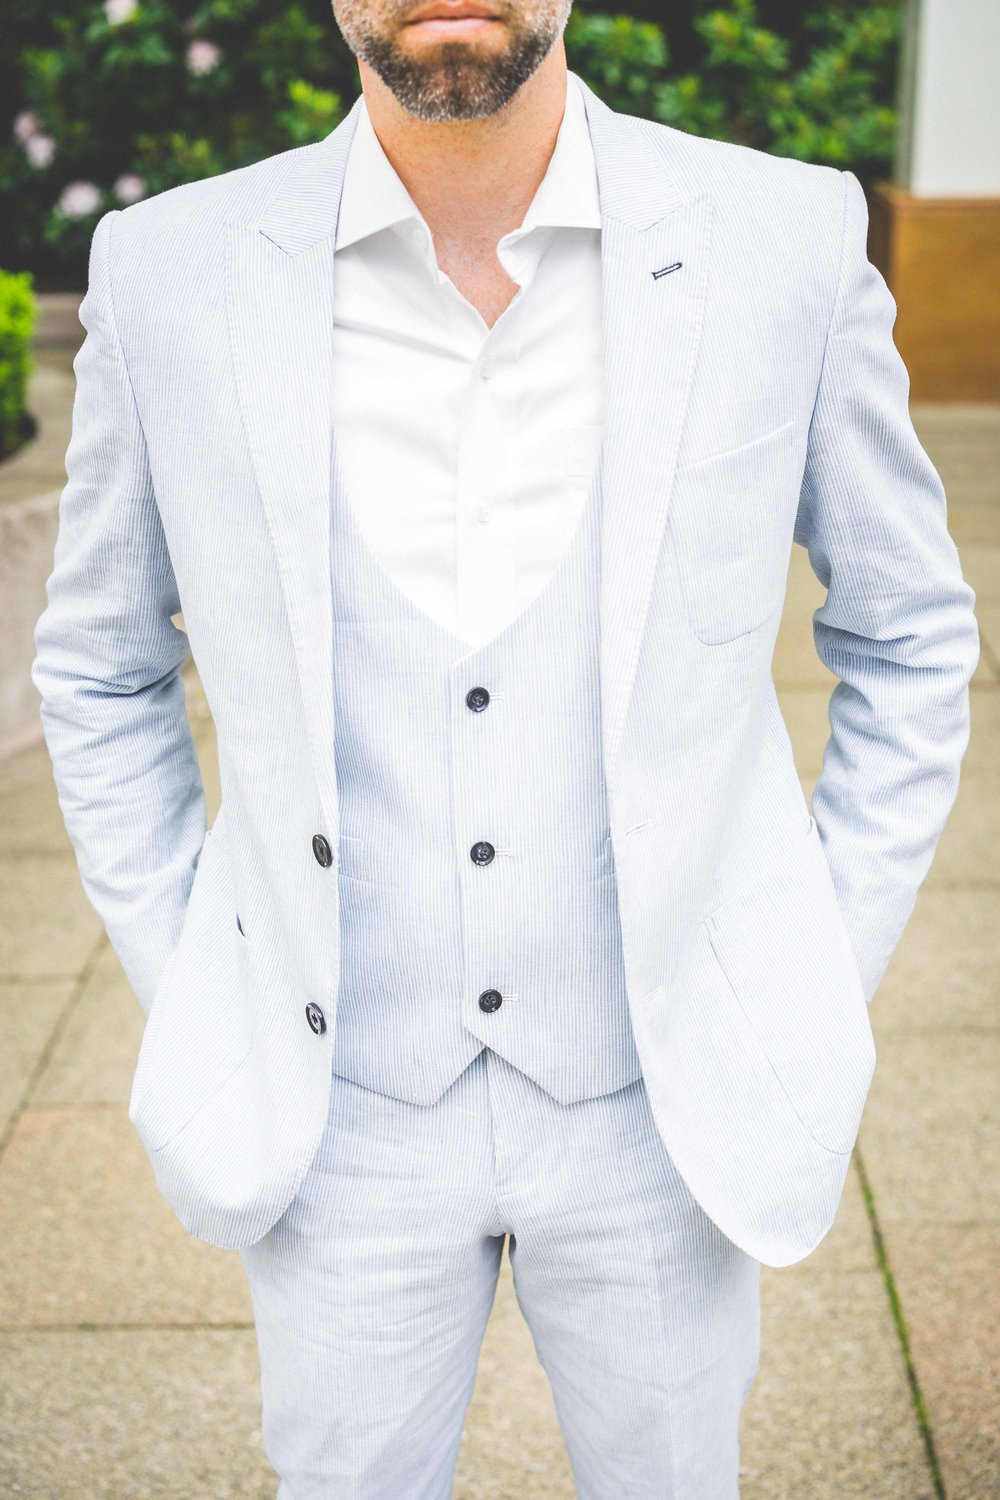 Men's Tailor Made 3-Piece Blue/White Suit